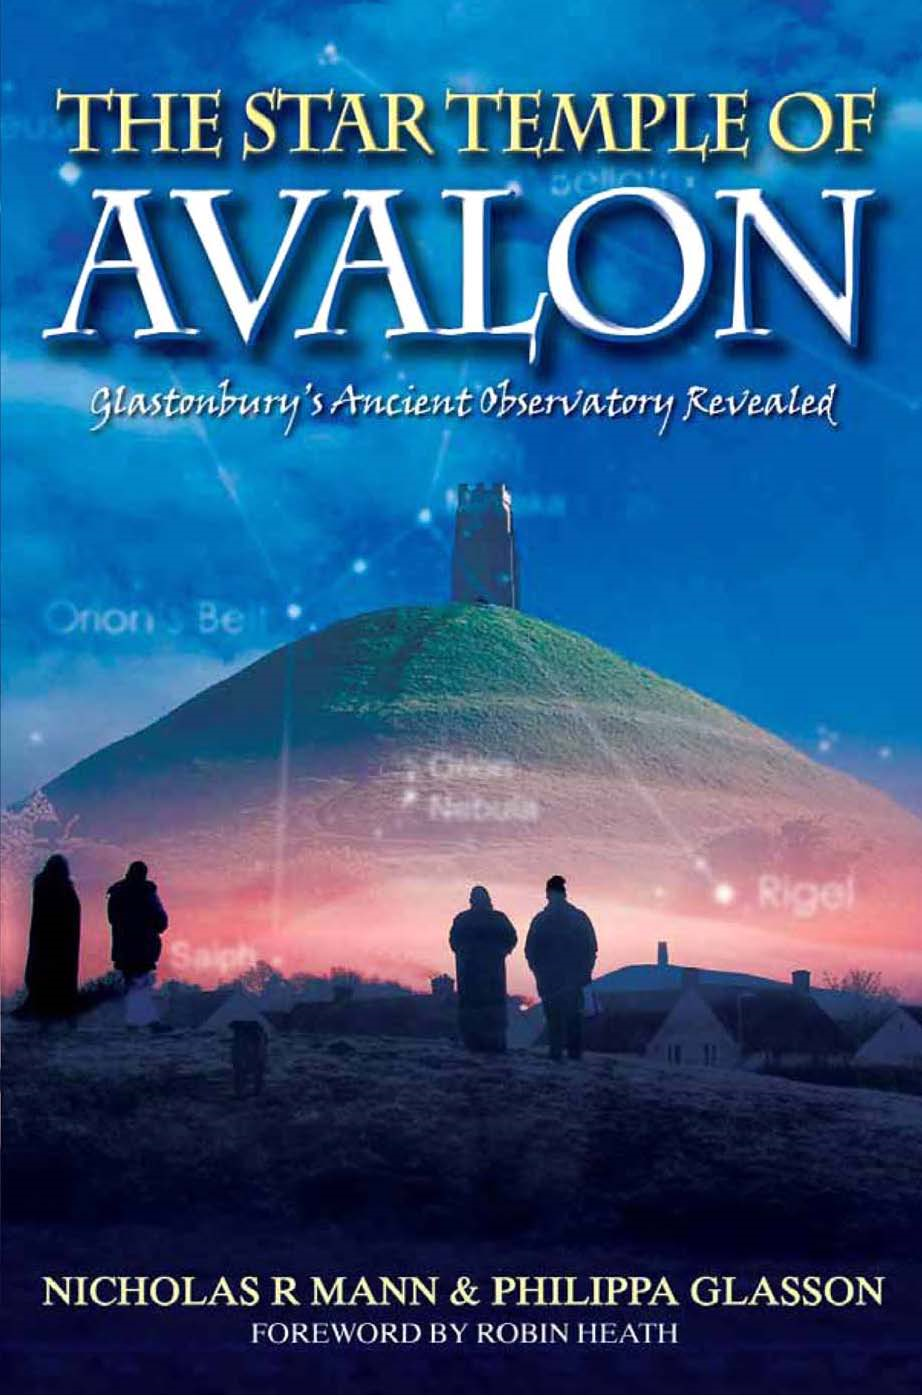 The Star Temple of Avalon: Glastonbury's Ancient Observatory Revealed